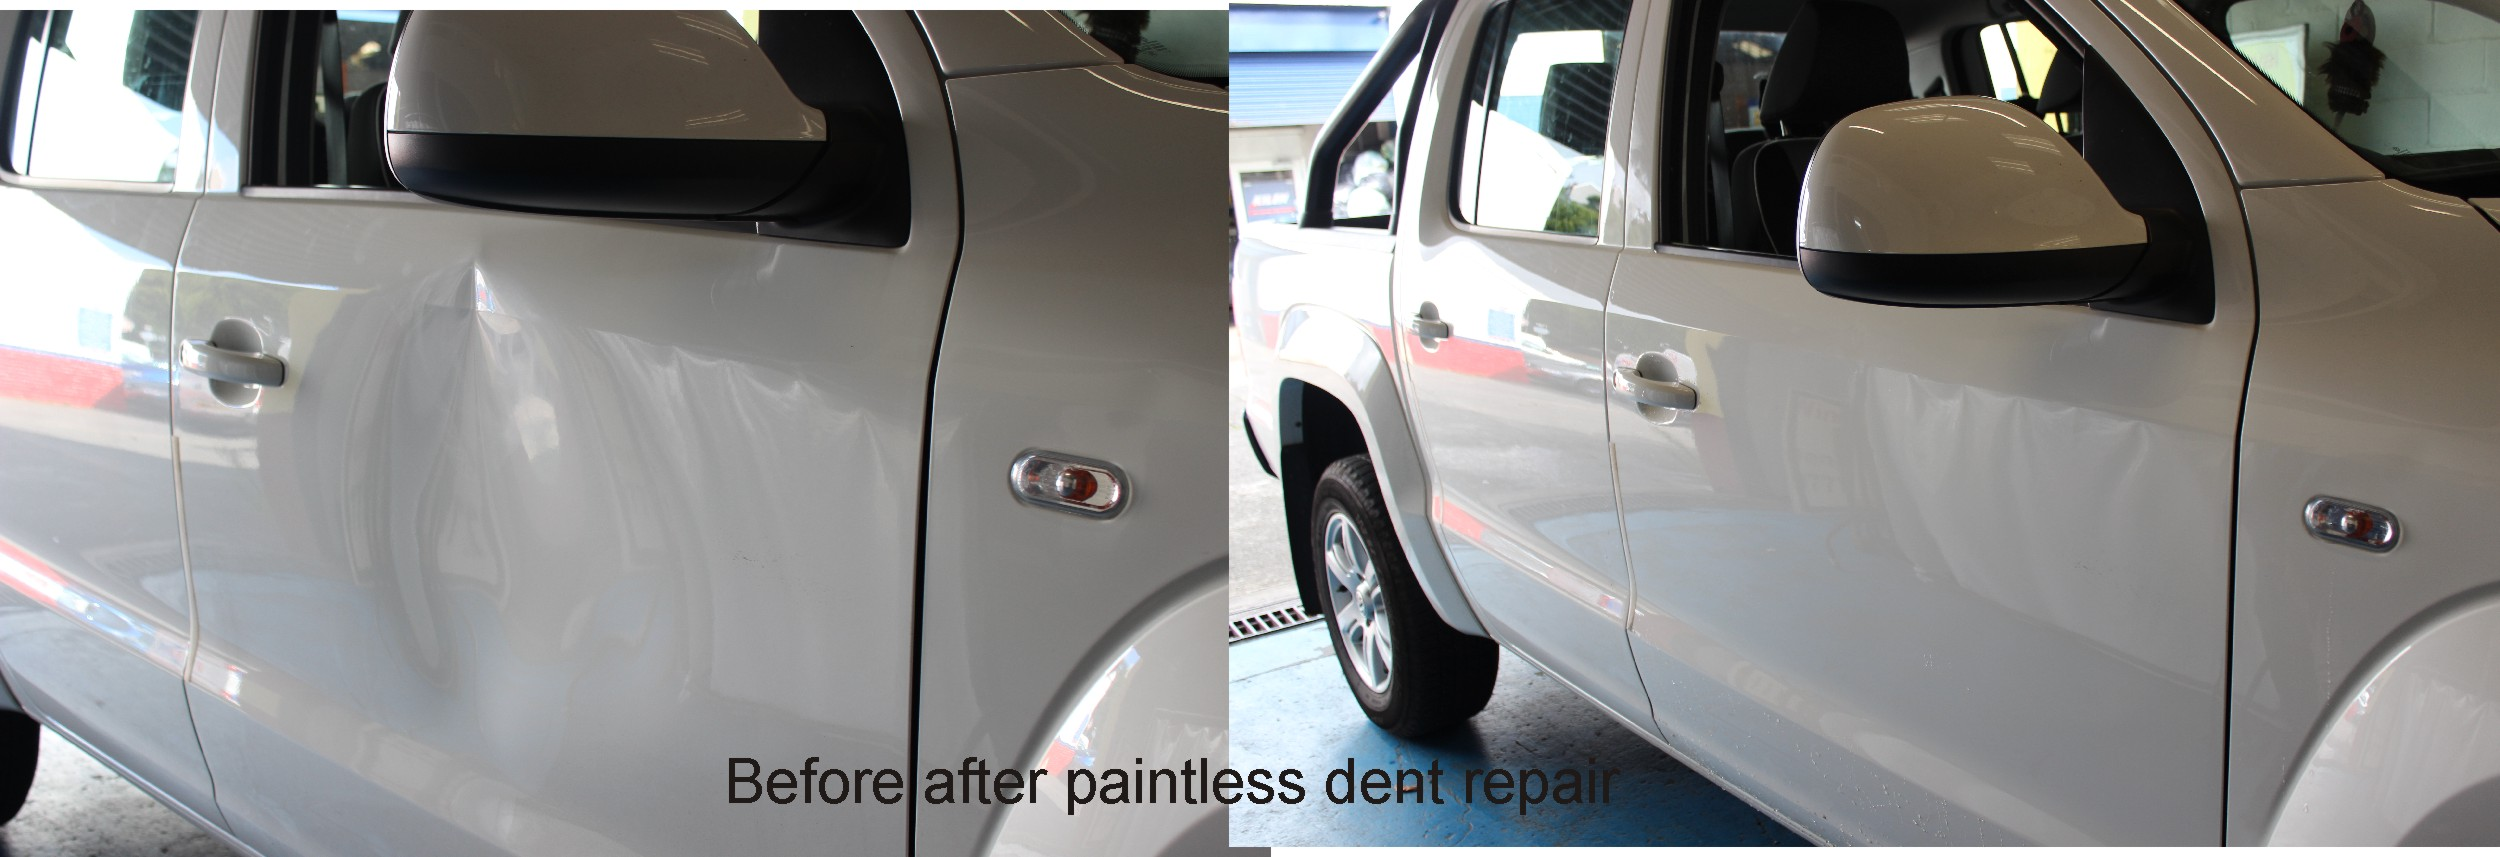 Mobile Car Scratch Repair South Wales Swansea Window Tint Centre Professional Auto Swansea